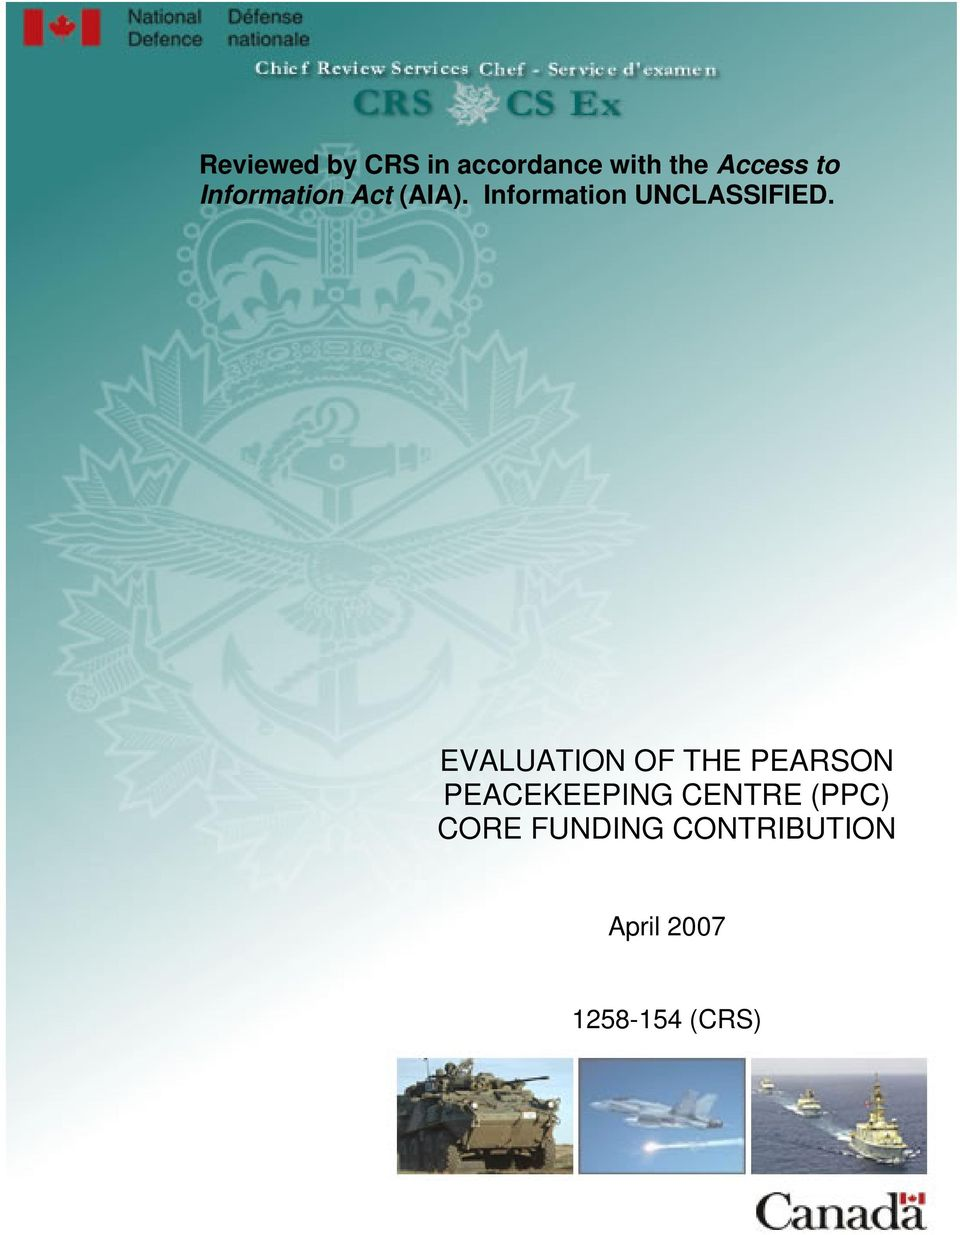 EVALUATION OF THE PEARSON PEACEKEEPING CENTRE